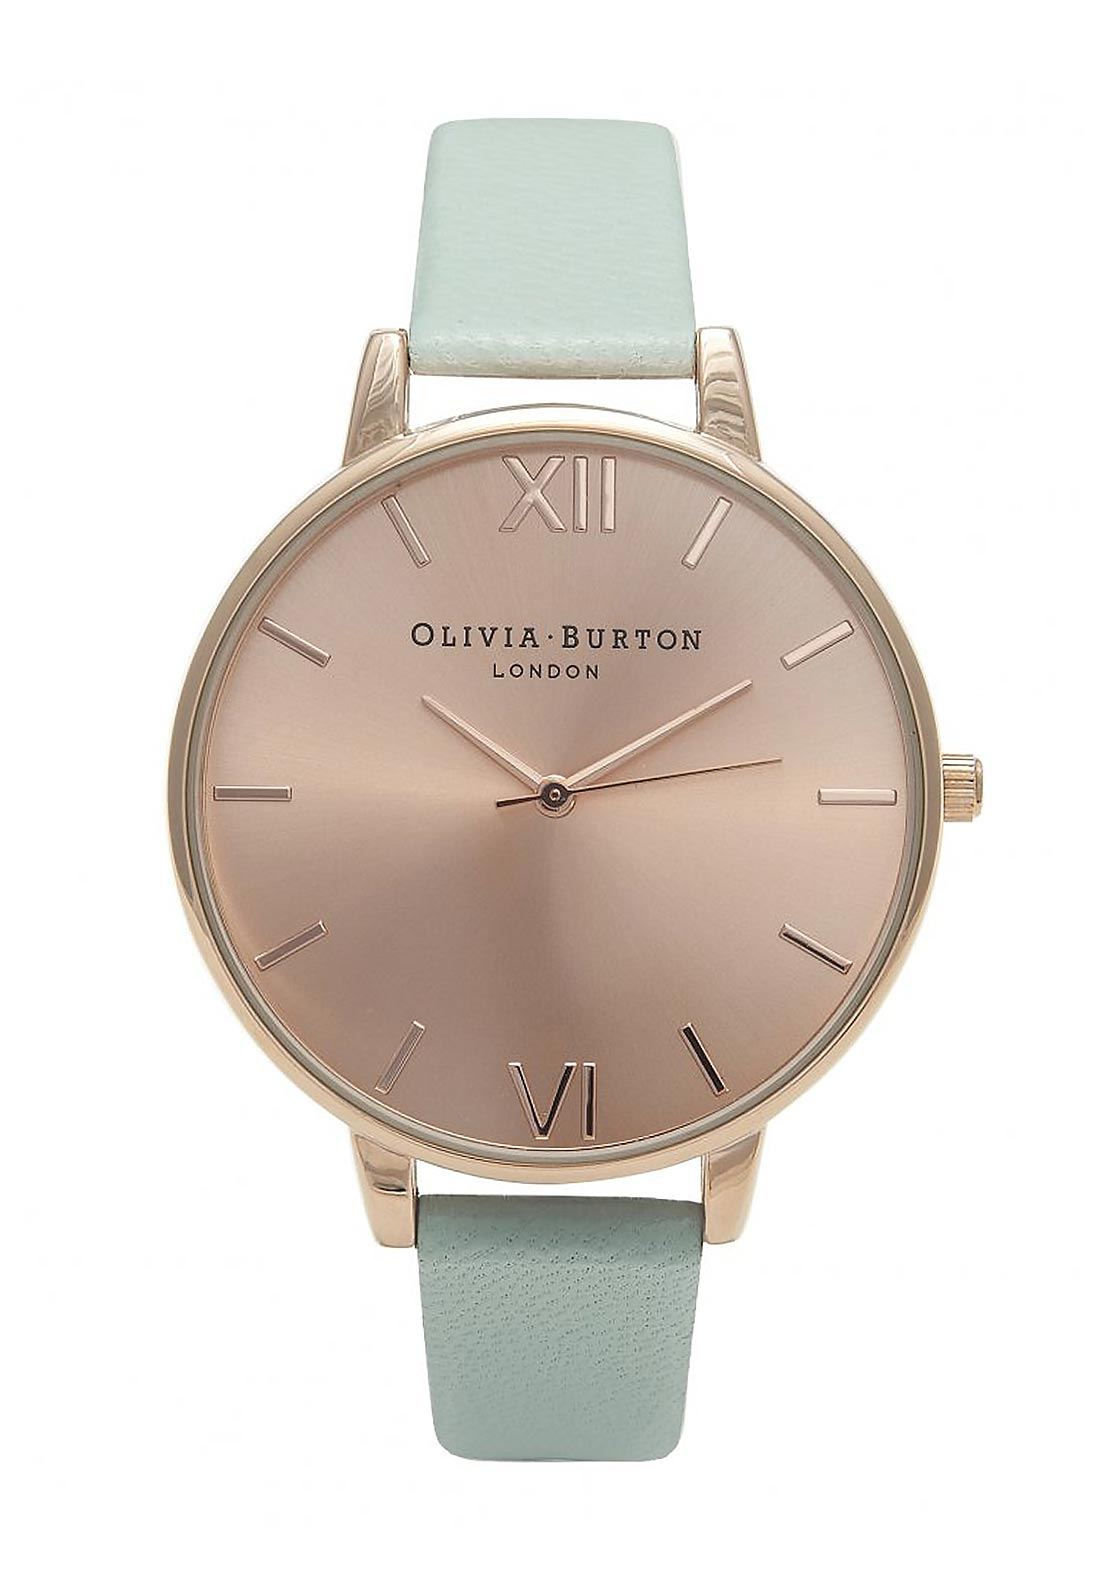 Olivia Burton Big Dial Watch, Mint & Rose Gold